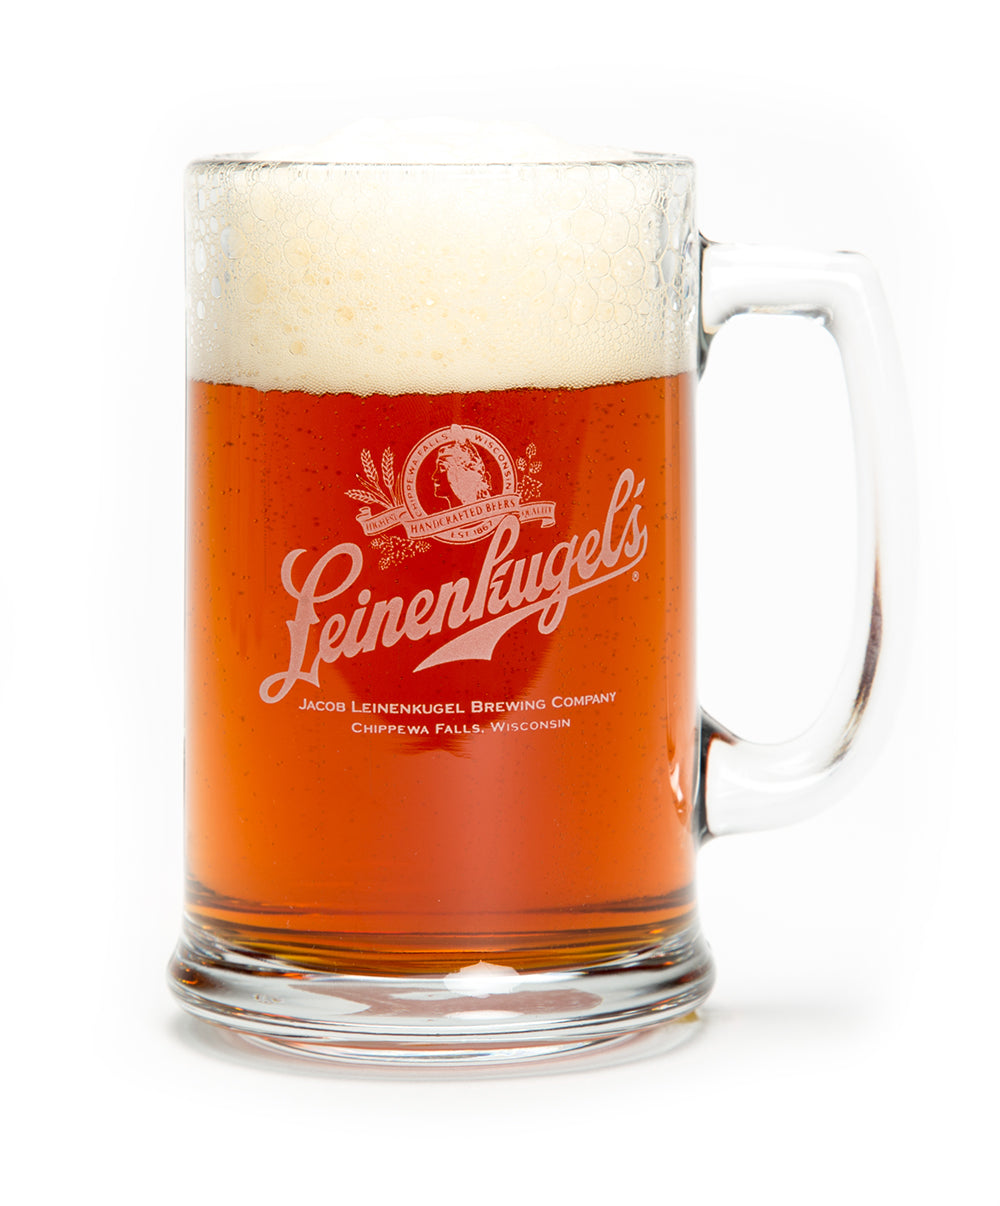 JLBC ETCHED BEER MUG